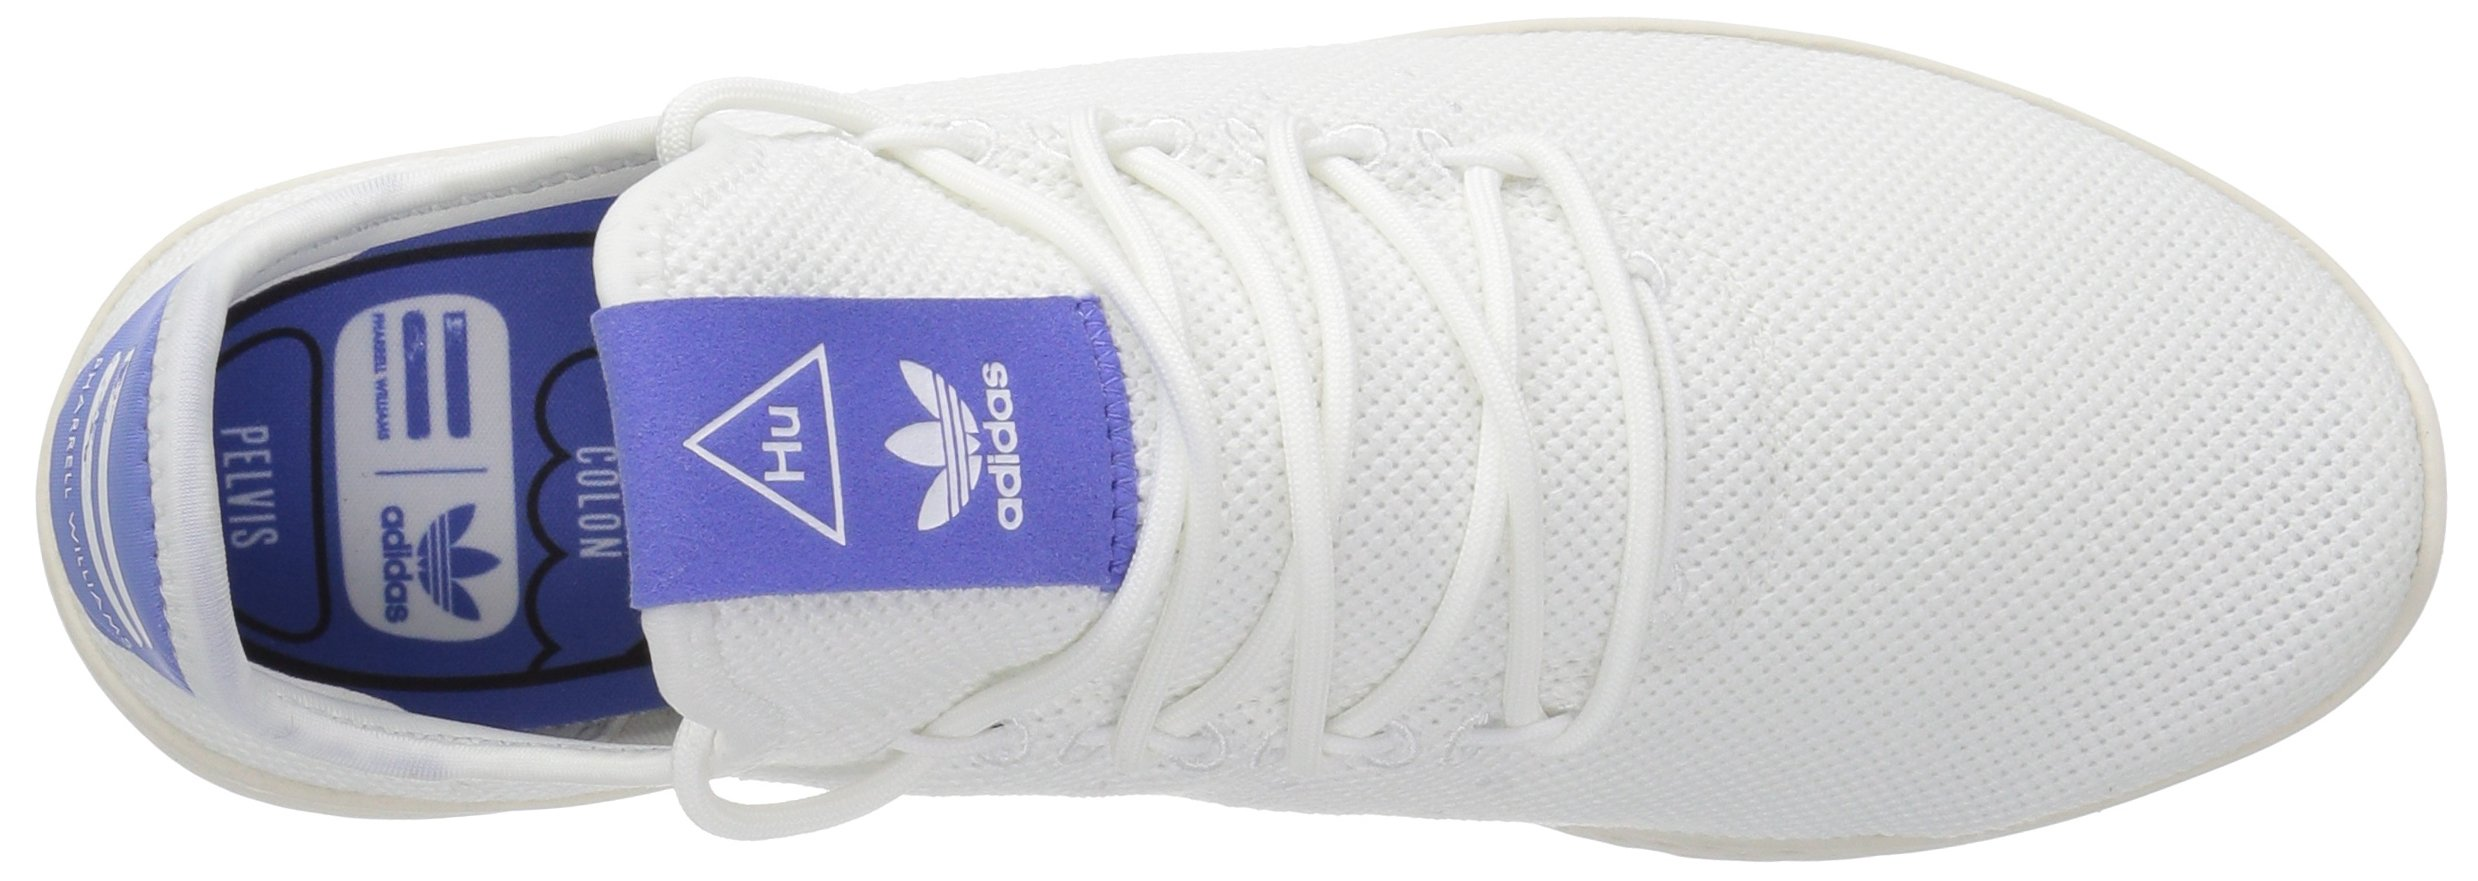 adidas Originals Men's Pharrell Williams Tennis HU Running Shoe, White/Chalk, 5.5 M US by adidas Originals (Image #7)